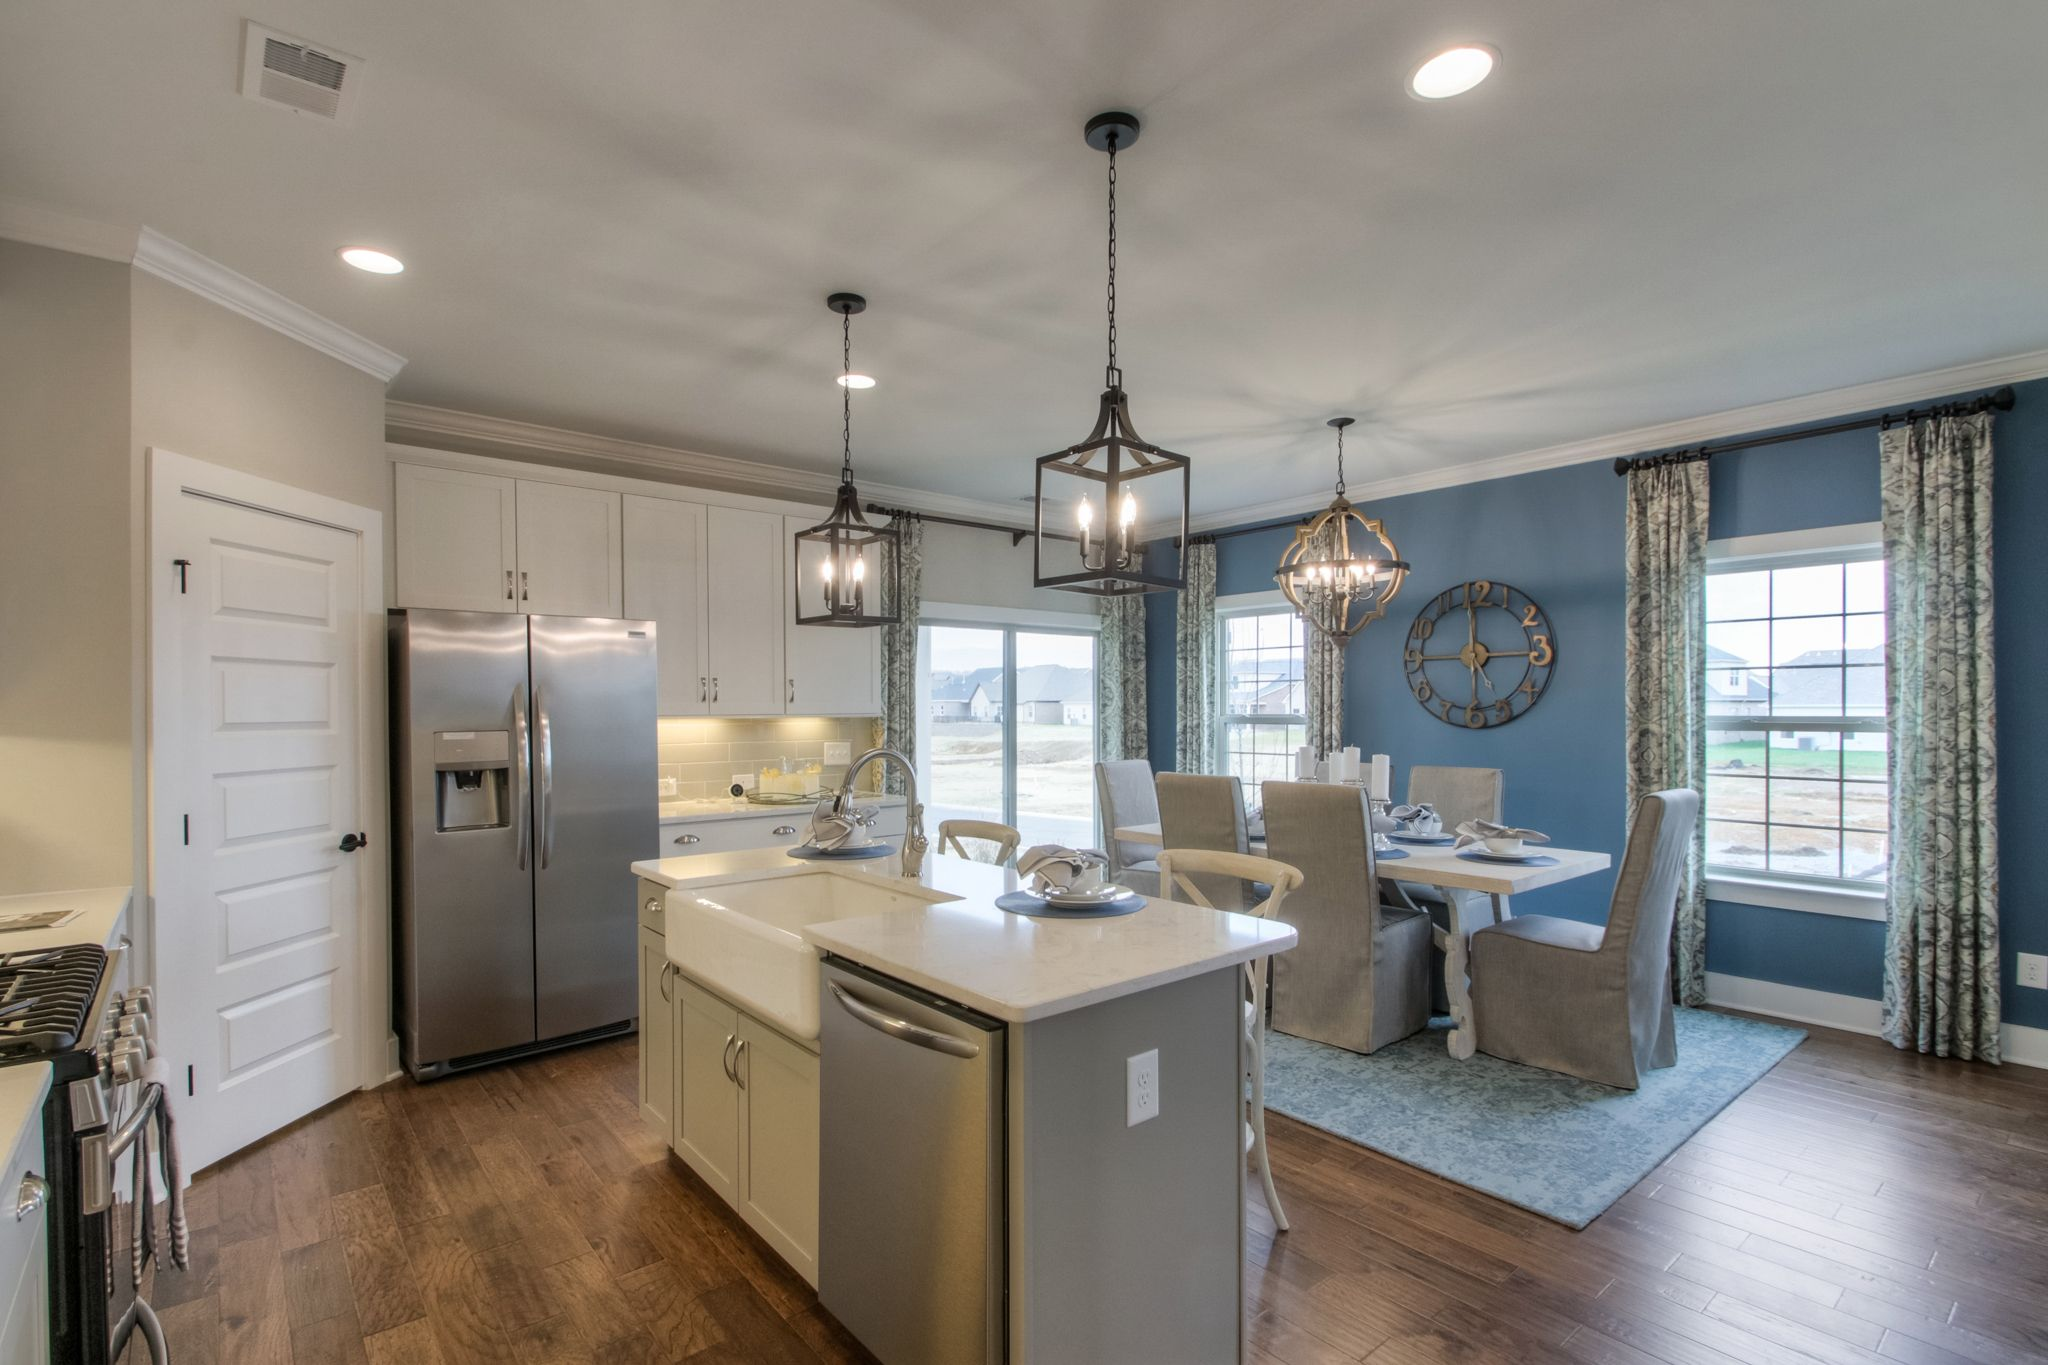 Kitchen featured in The Wellington By Goodall Homes in Knoxville, TN